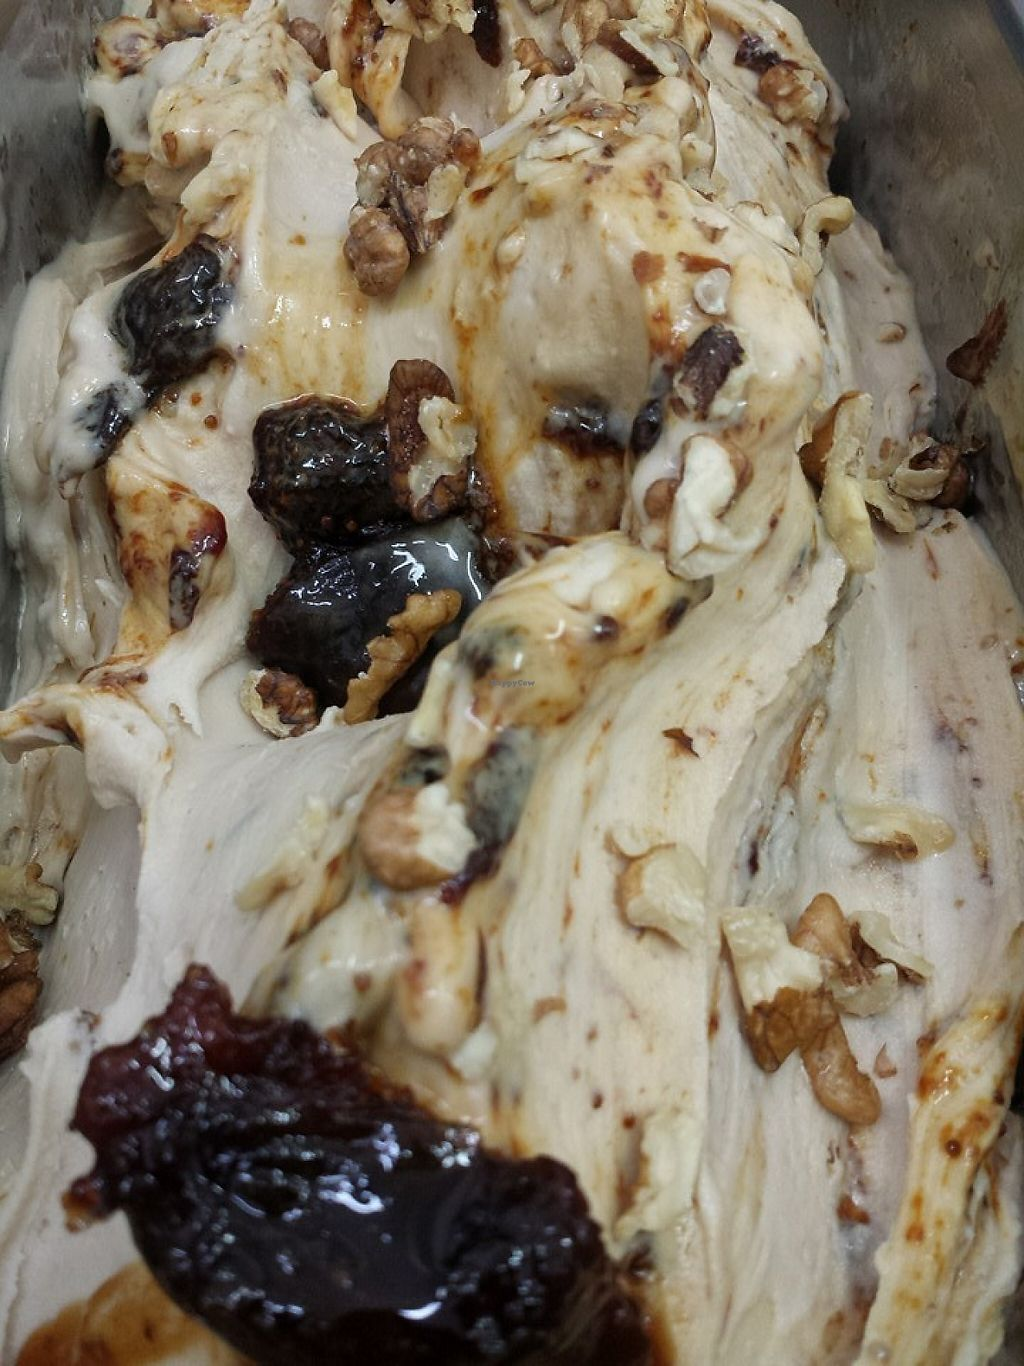 """Photo of Stella Marina Gelateria  by <a href=""""/members/profile/community5"""">community5</a> <br/>Vegan fig and walnut gelato <br/> May 16, 2017  - <a href='/contact/abuse/image/92173/259249'>Report</a>"""